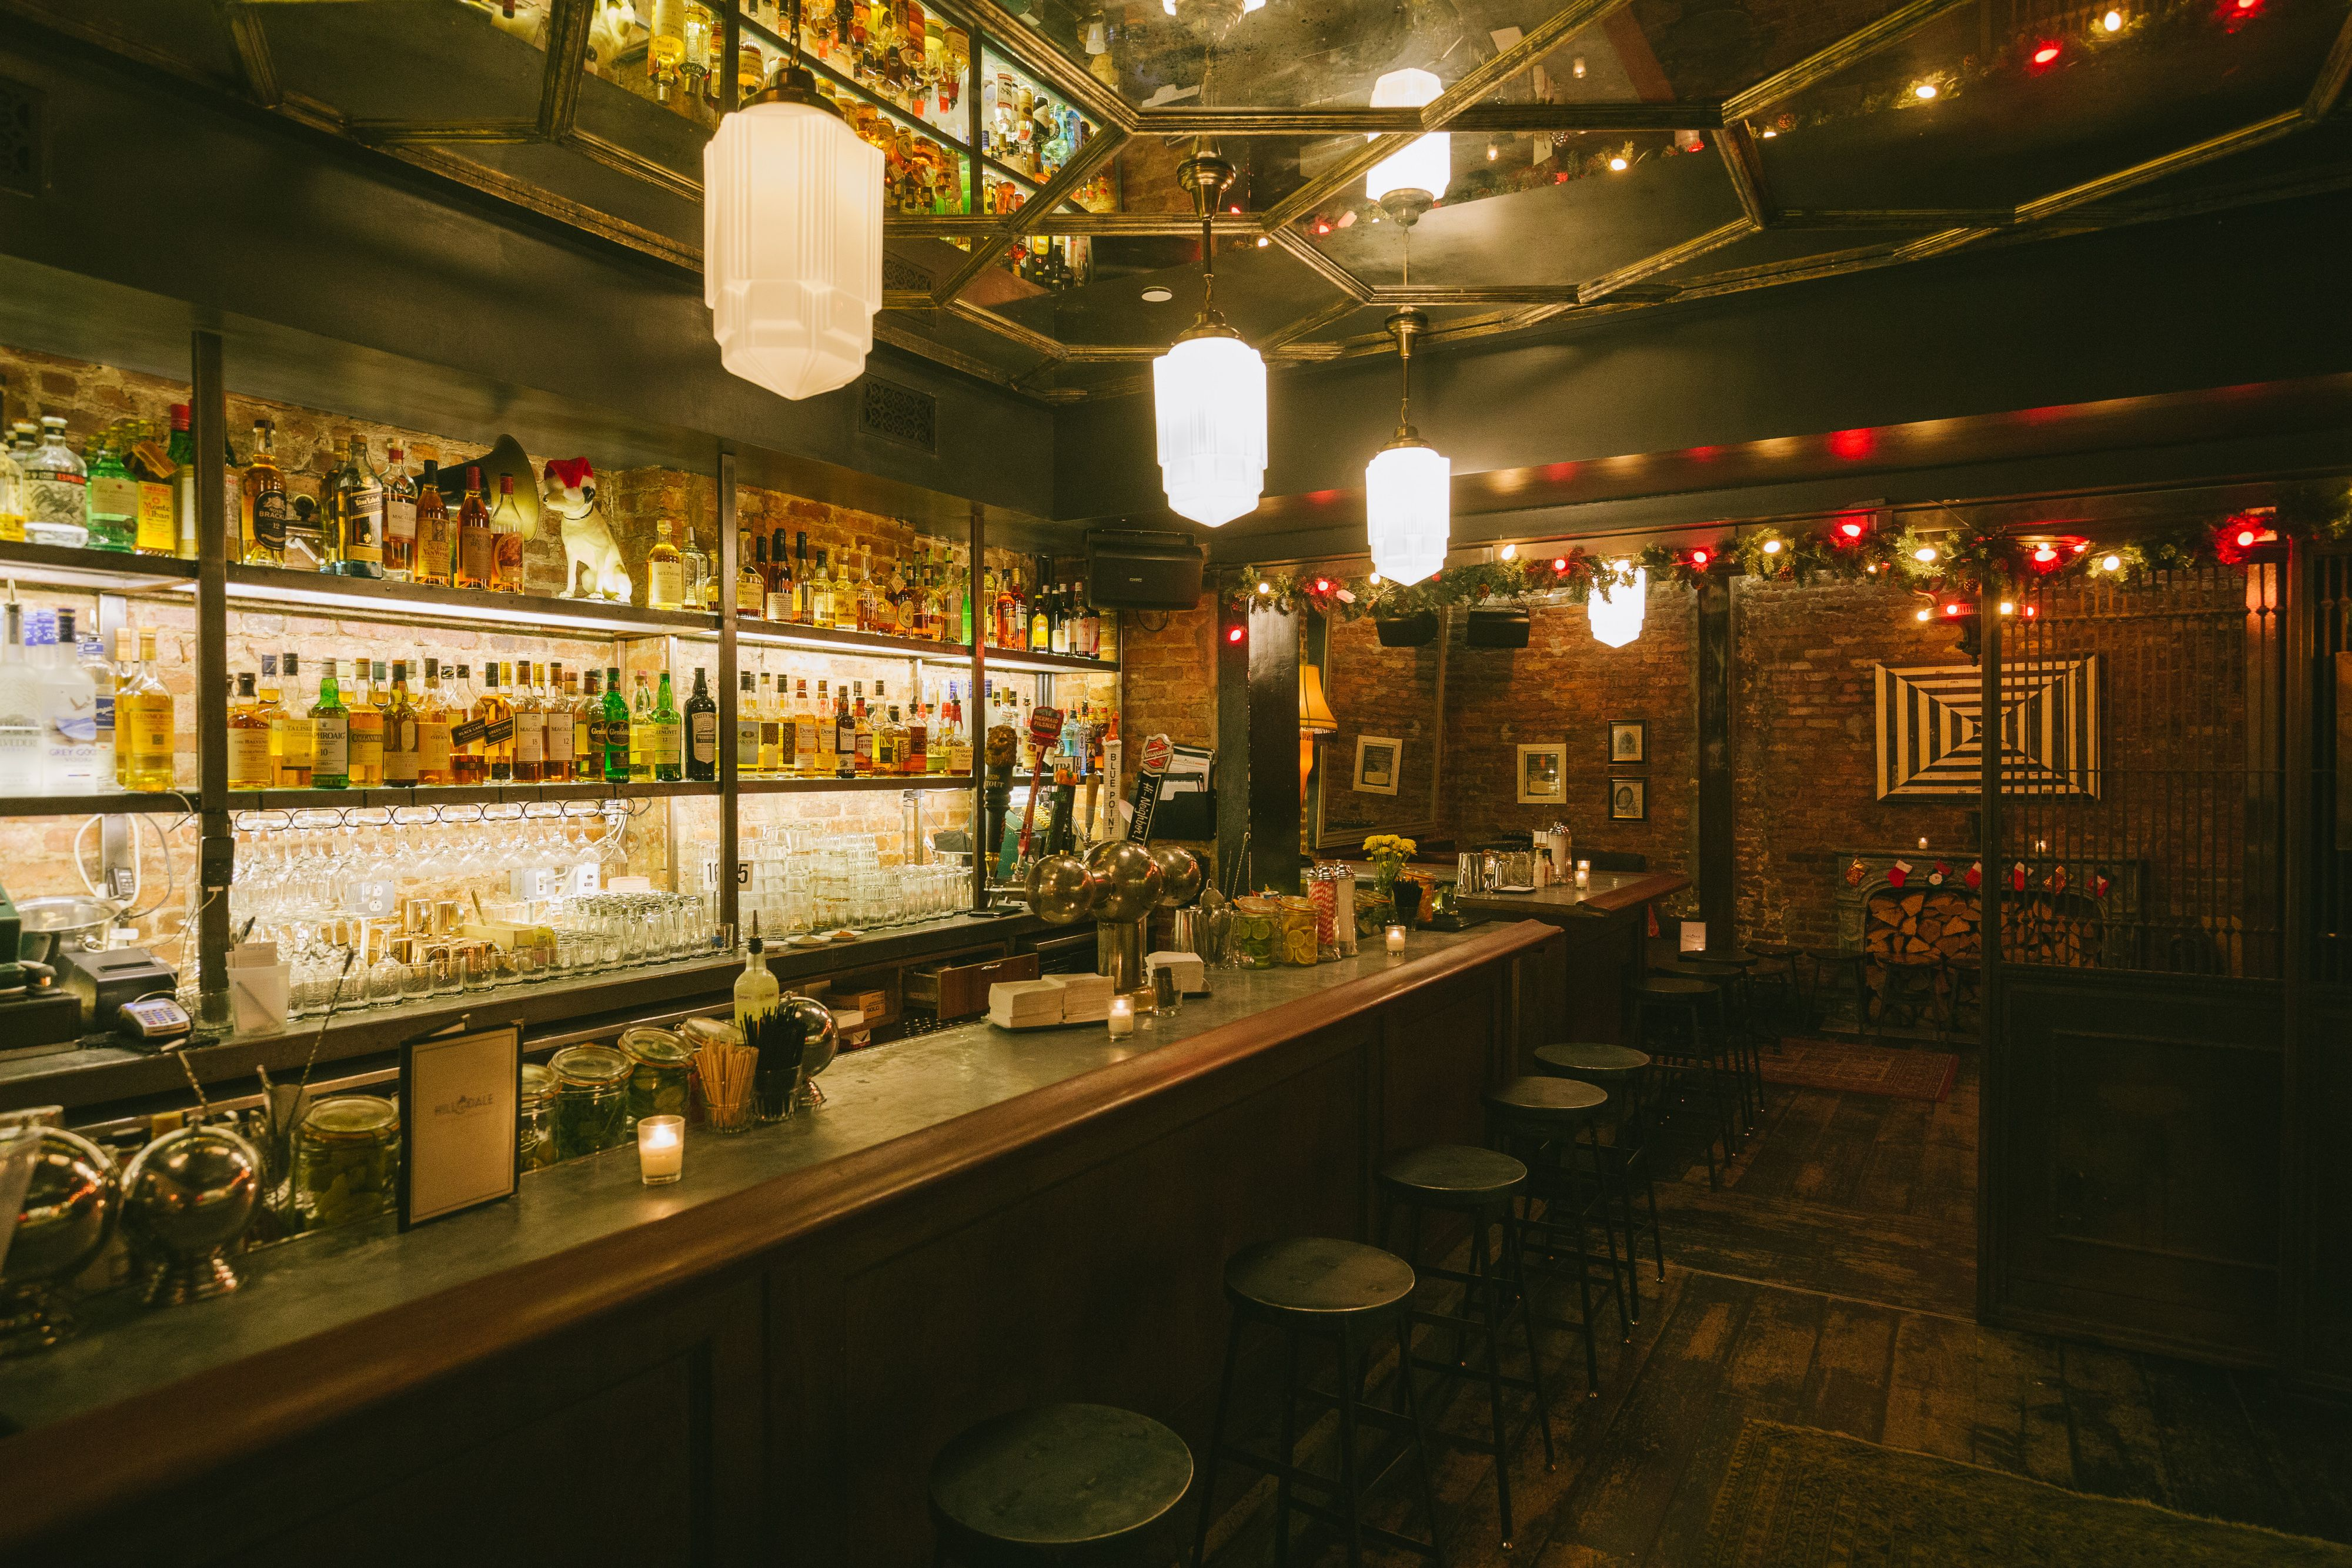 The Best Lower East Side Bars